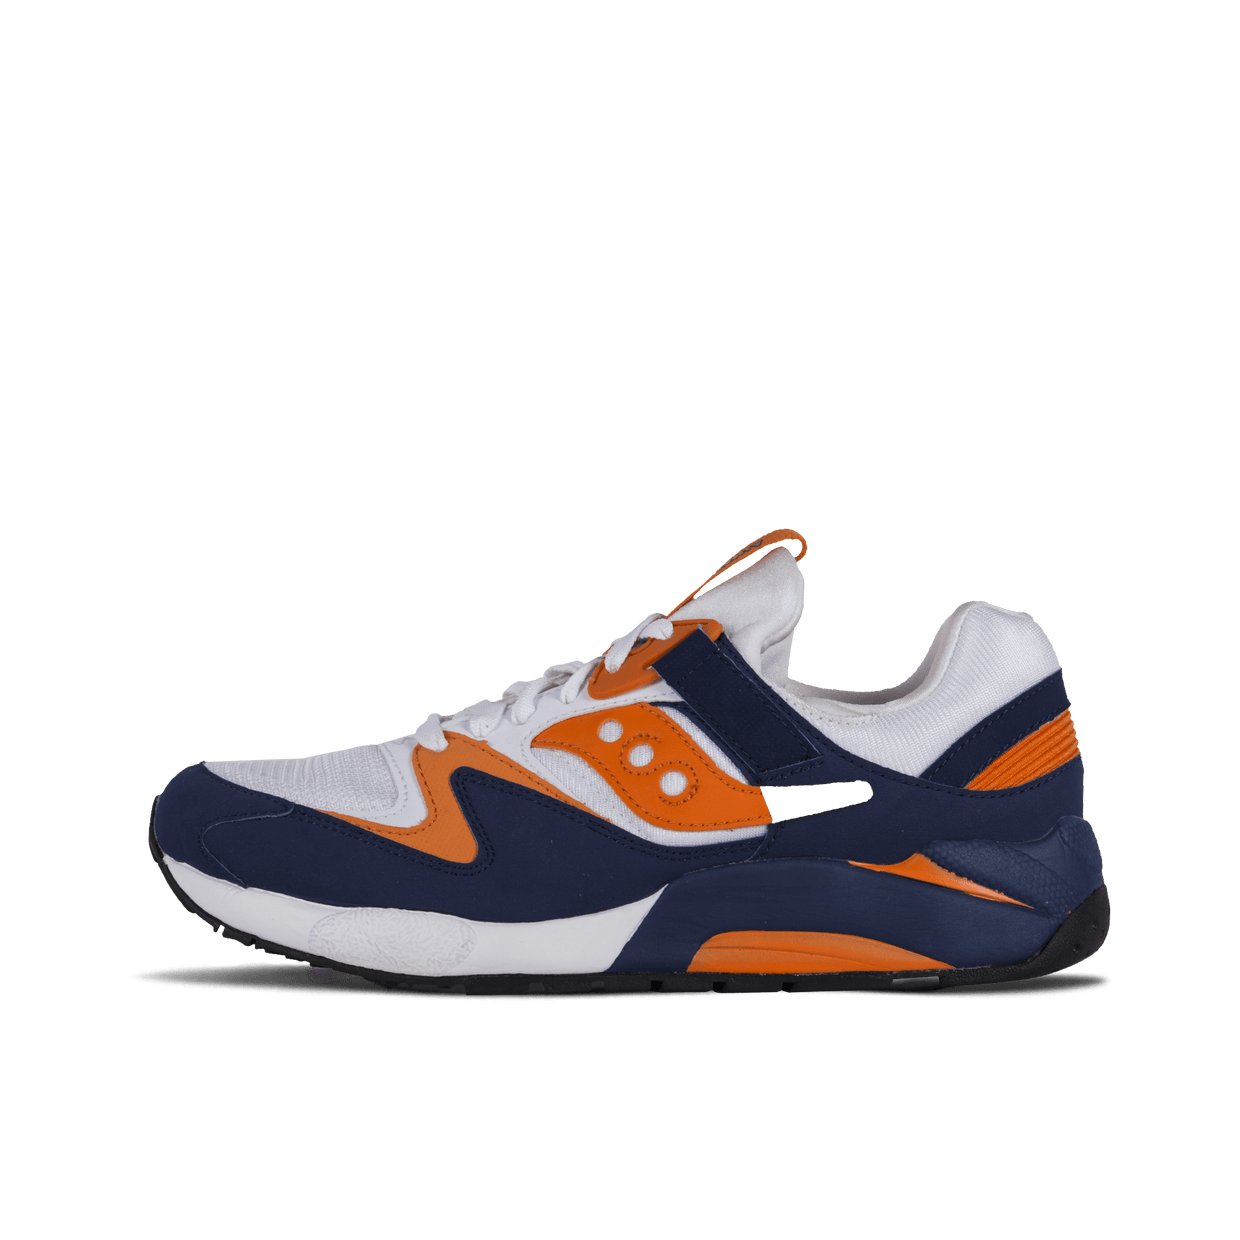 Grid 9000 - White/Blue/Orange